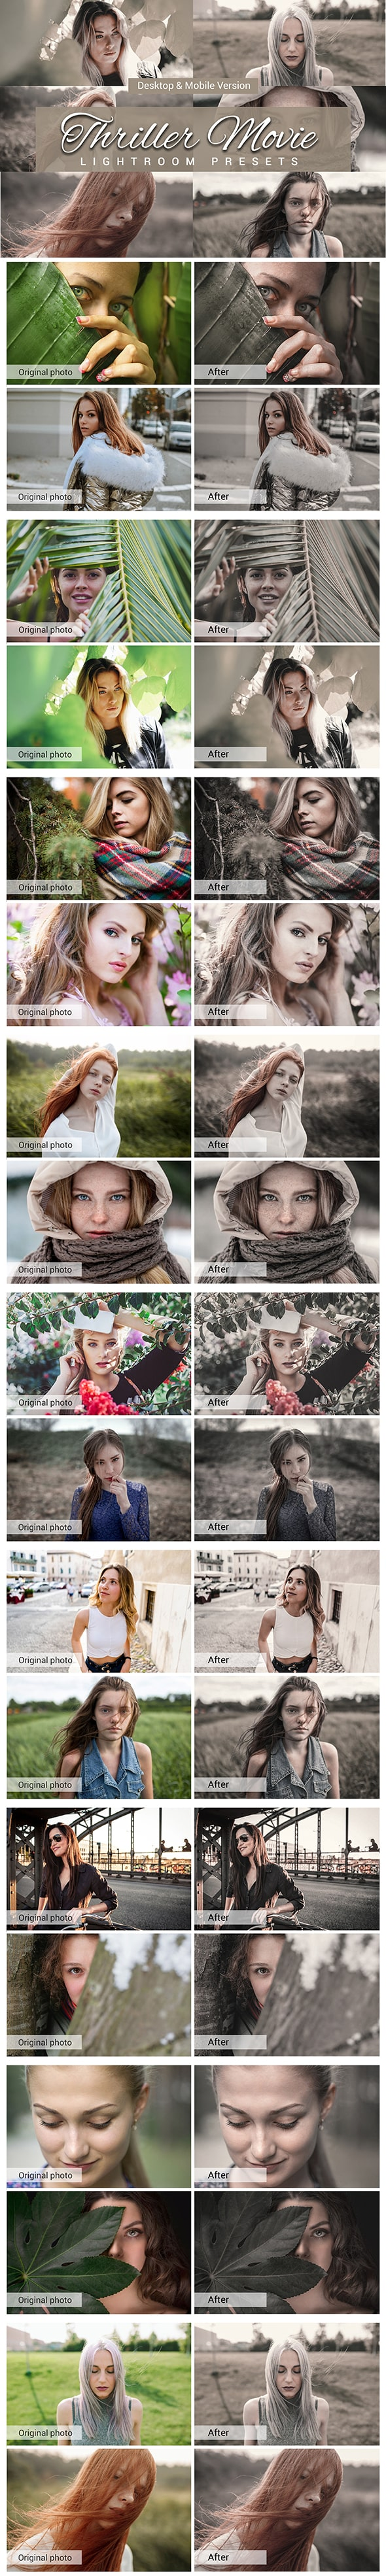 7500 New Complete Bundle Presets Lightroom, Photoshop Actions and Cinematic LUTs - Thriller Movie Preview min